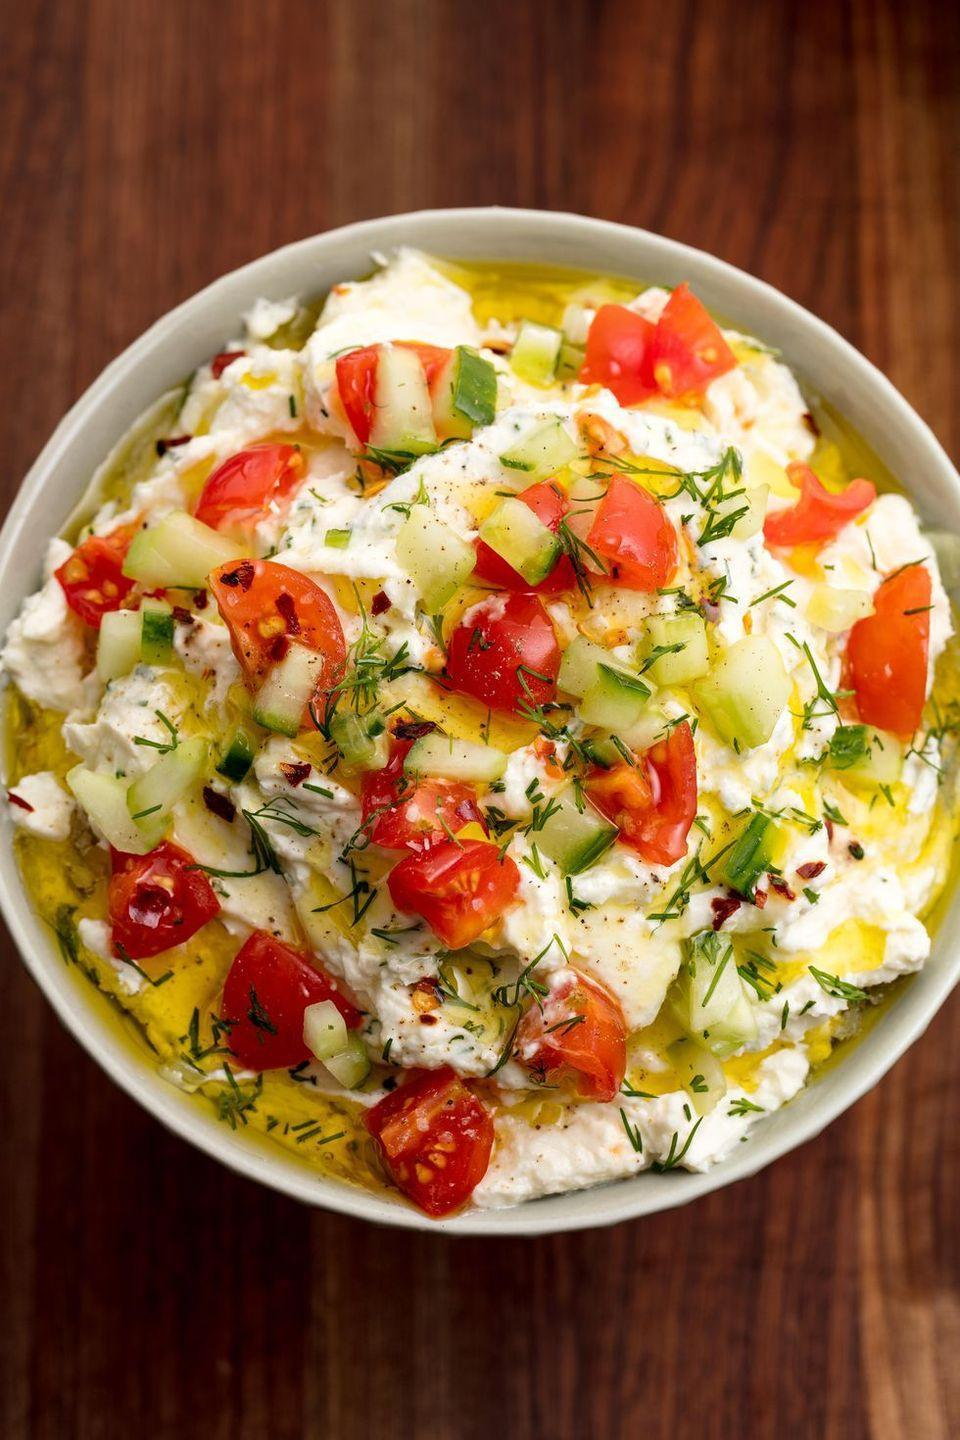 """<p>Serve with cucumbers, carrots, and other veggie slices for all your healthy friends.</p><p>Get the recipe from <a href=""""https://www.delish.com/cooking/recipe-ideas/recipes/a50968/greek-feta-dip-recipe/"""" rel=""""nofollow noopener"""" target=""""_blank"""" data-ylk=""""slk:Delish"""" class=""""link rapid-noclick-resp"""">Delish</a>.</p>"""